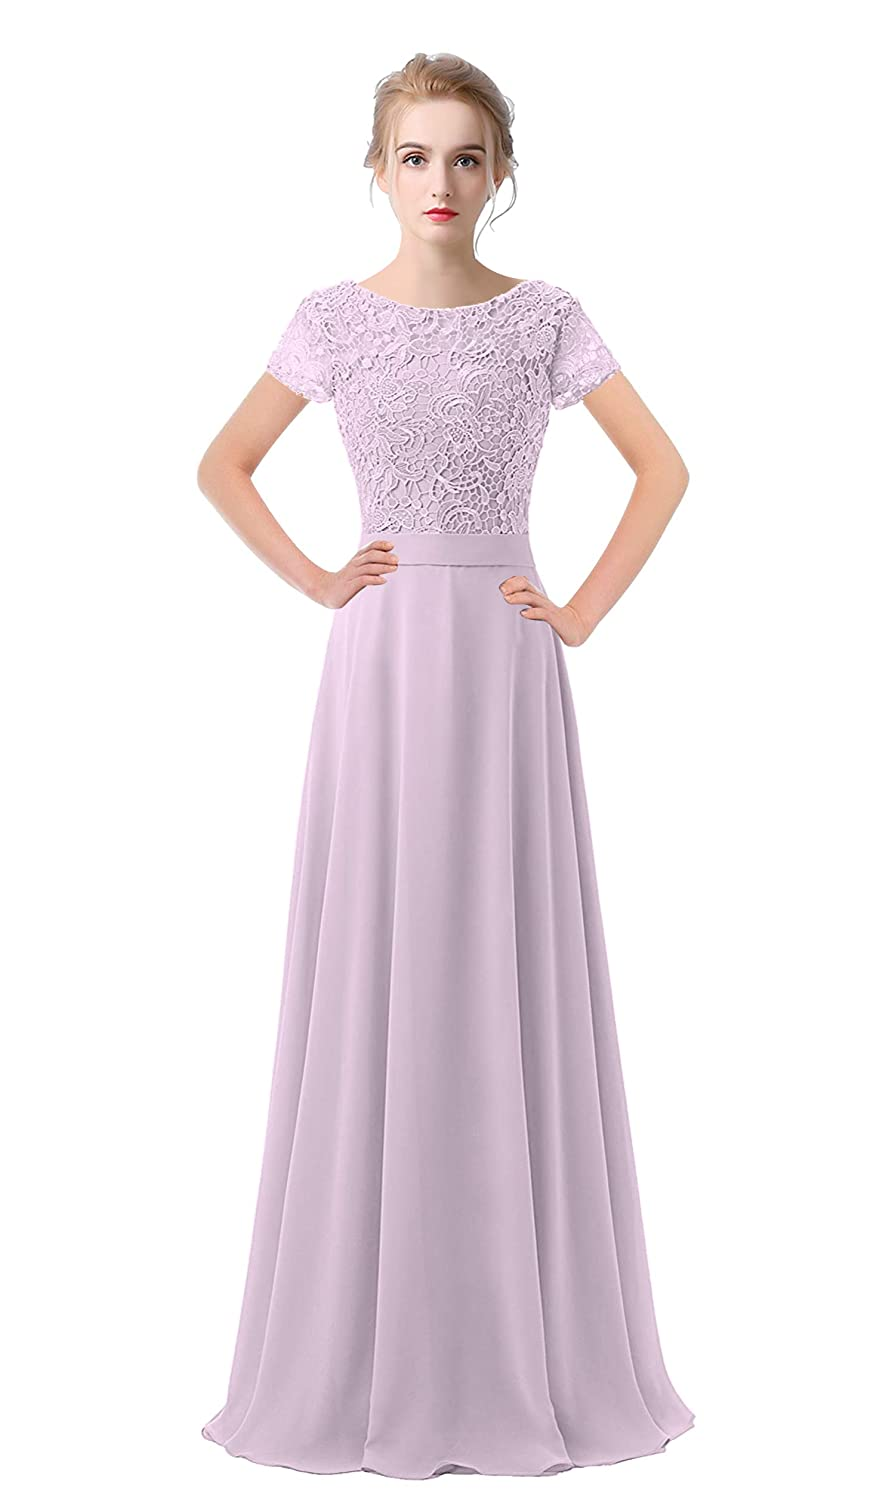 Lavender VaniaDress Women Lace Short Sleeves Long Evening Dress Prom Gown V061LF